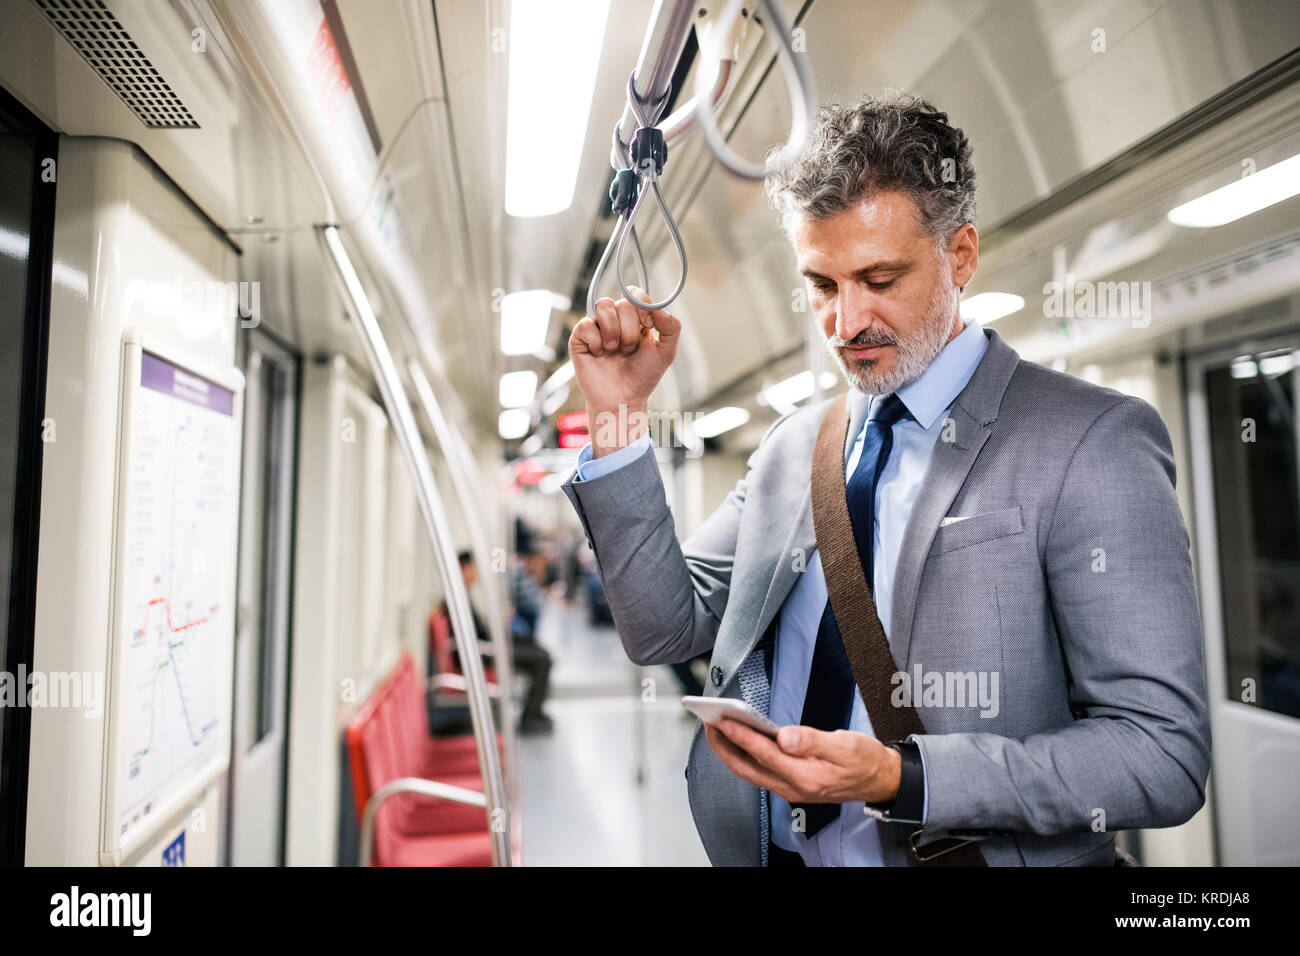 Mature businessman with smartphone in a metro train. Stock Photo